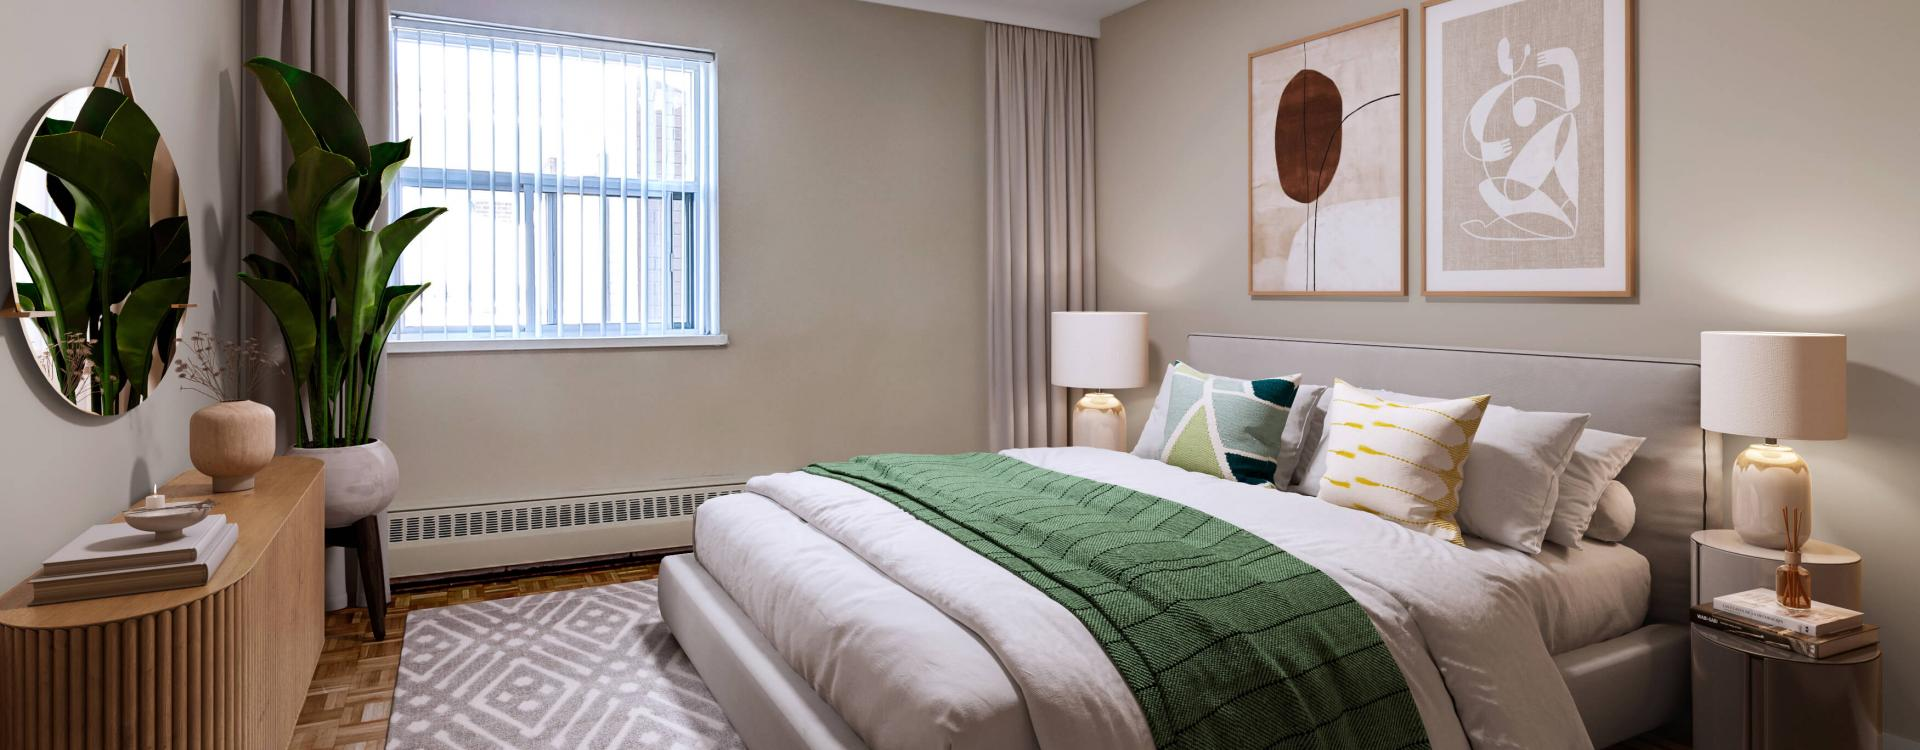 Modern bedroom at Lord Seaton Apartments in Toronto. Rent with Minto Apartments.